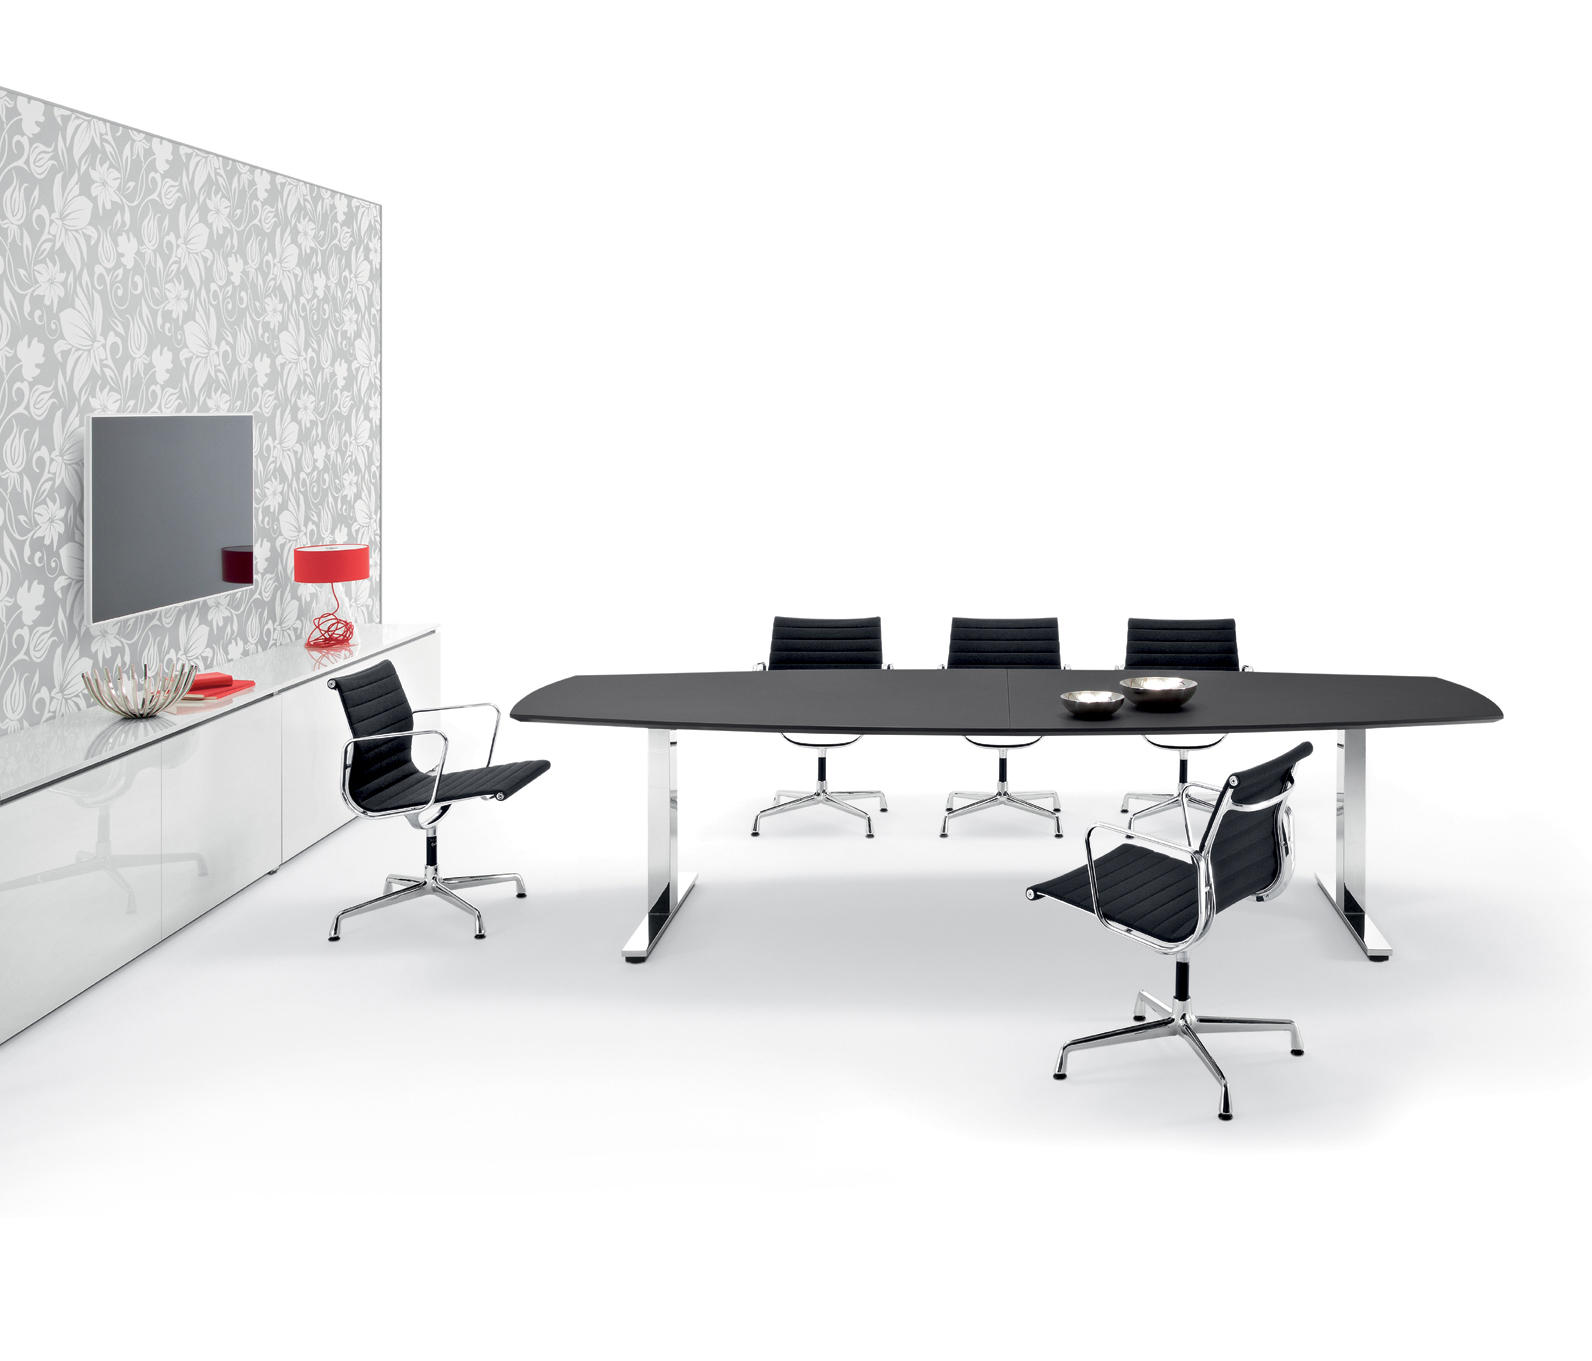 winea pro conference tables from wini b rom bel architonic. Black Bedroom Furniture Sets. Home Design Ideas